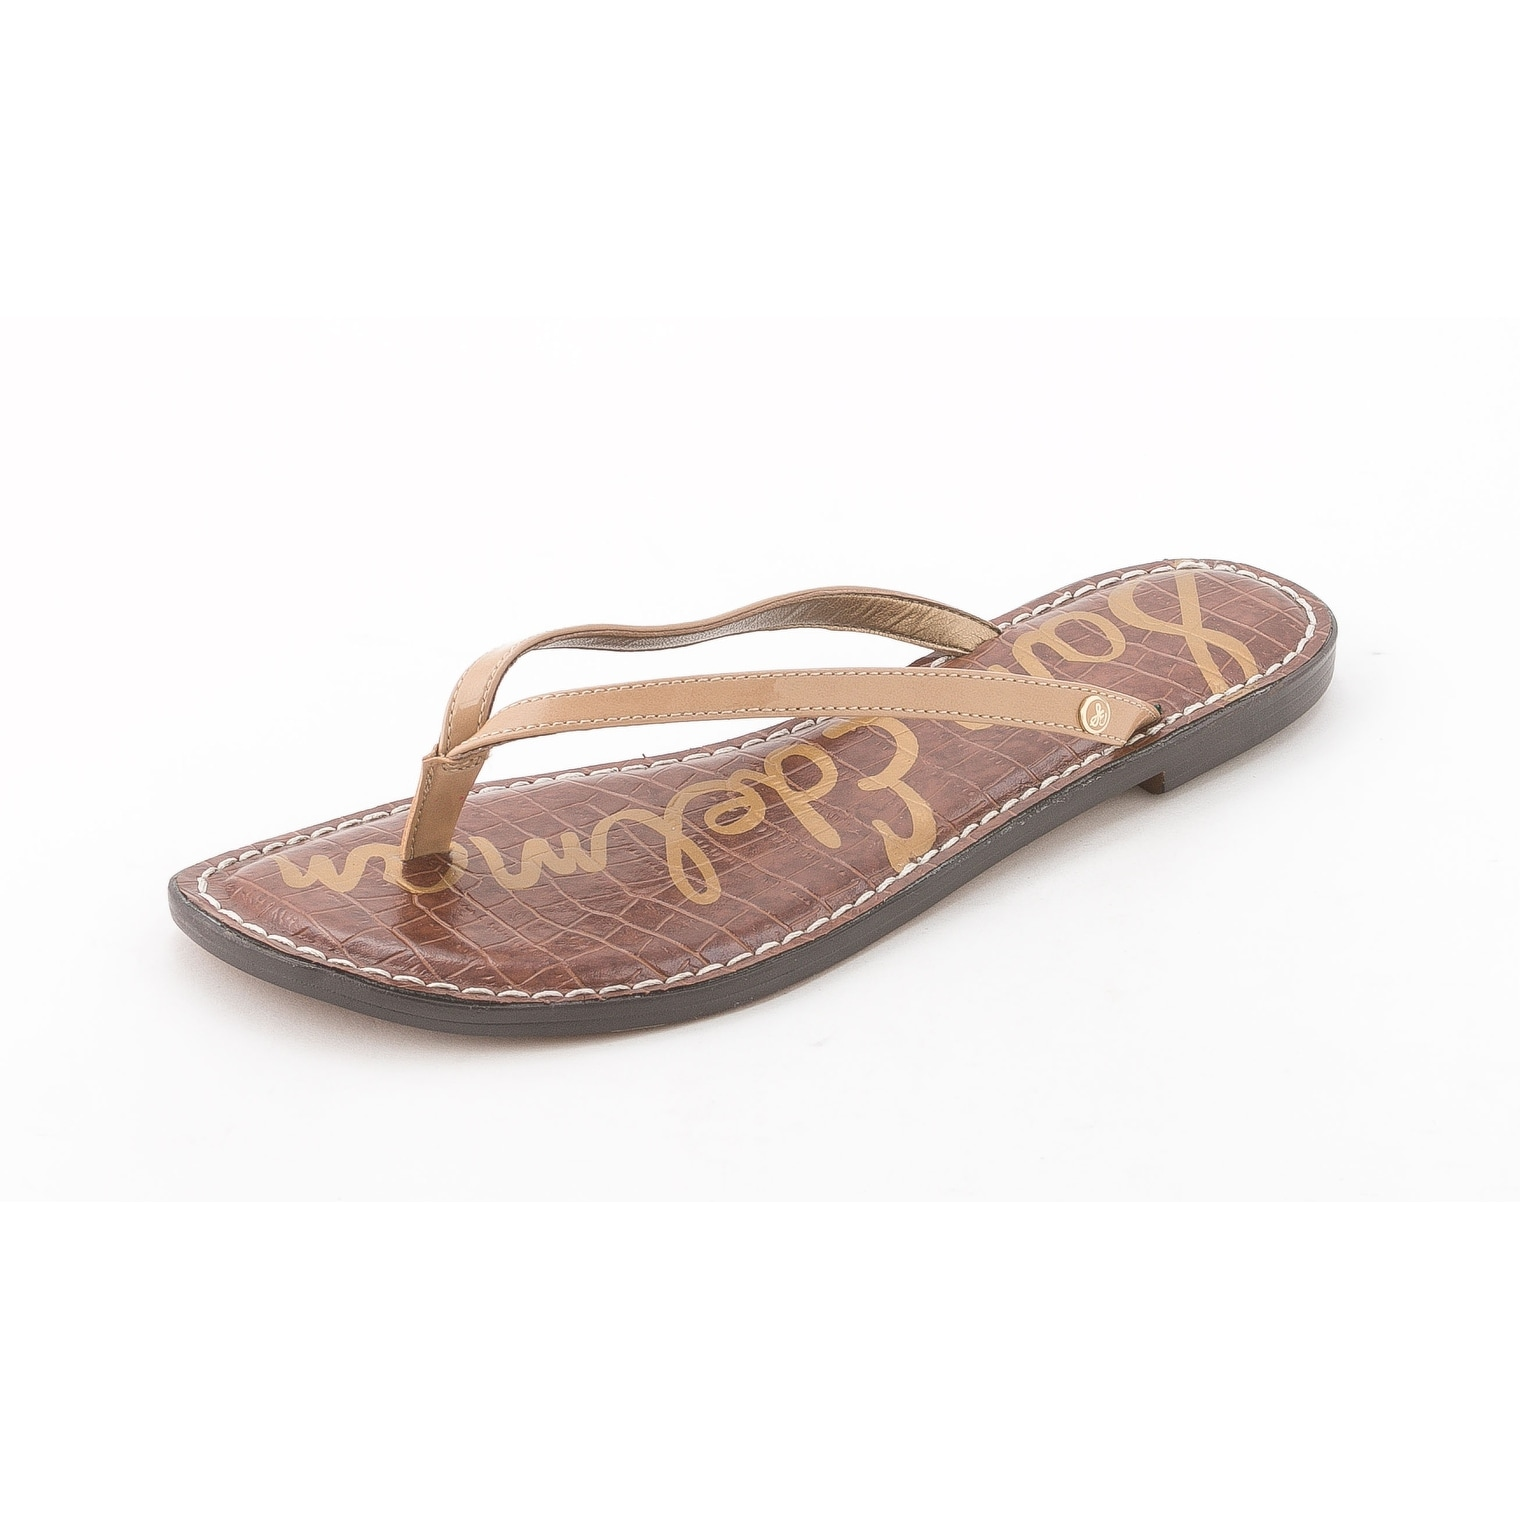 5b5504f0c Shop Sam Edelman Women s Gracie Thong Sandal - Free Shipping On Orders Over   45 - Overstock - 14793503